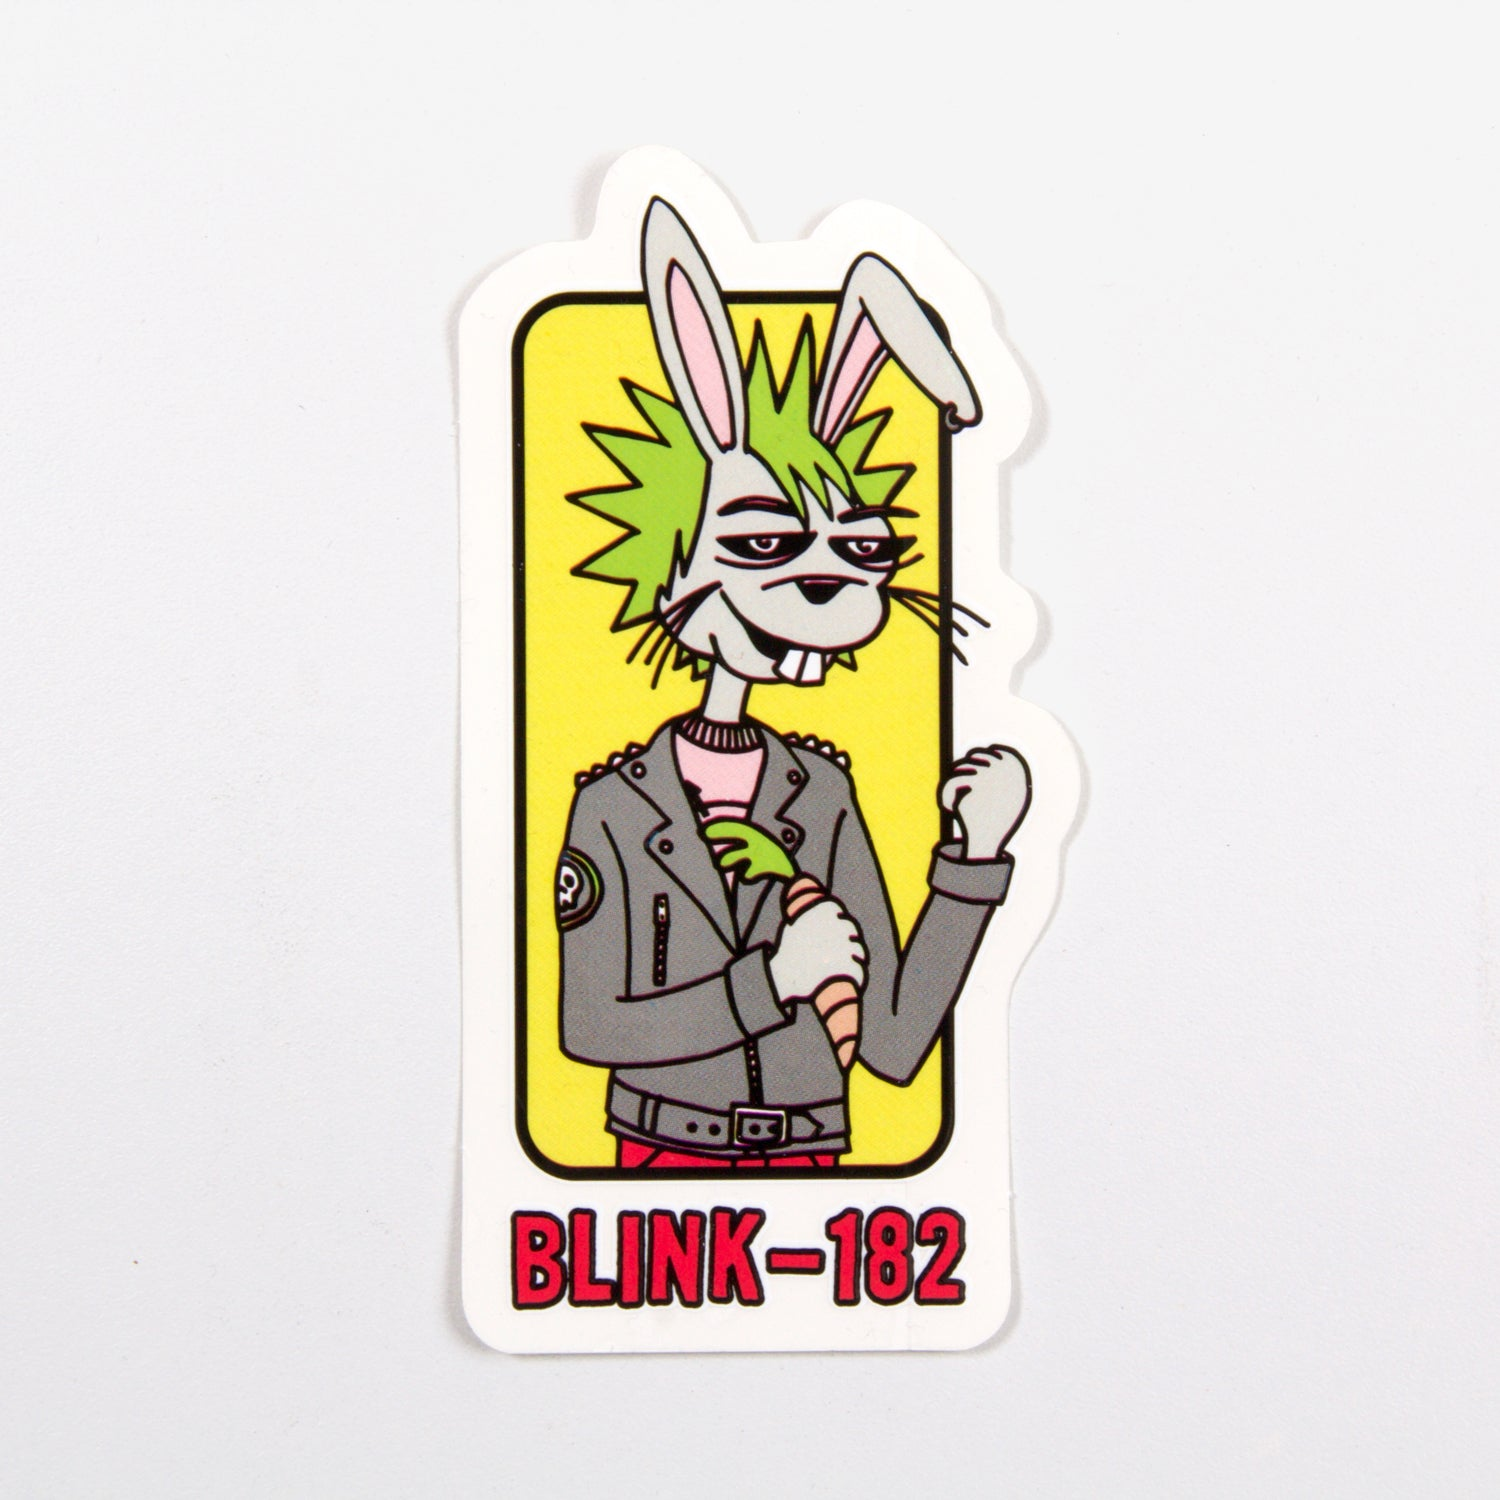 blink-182 Yeah Boy Sticker